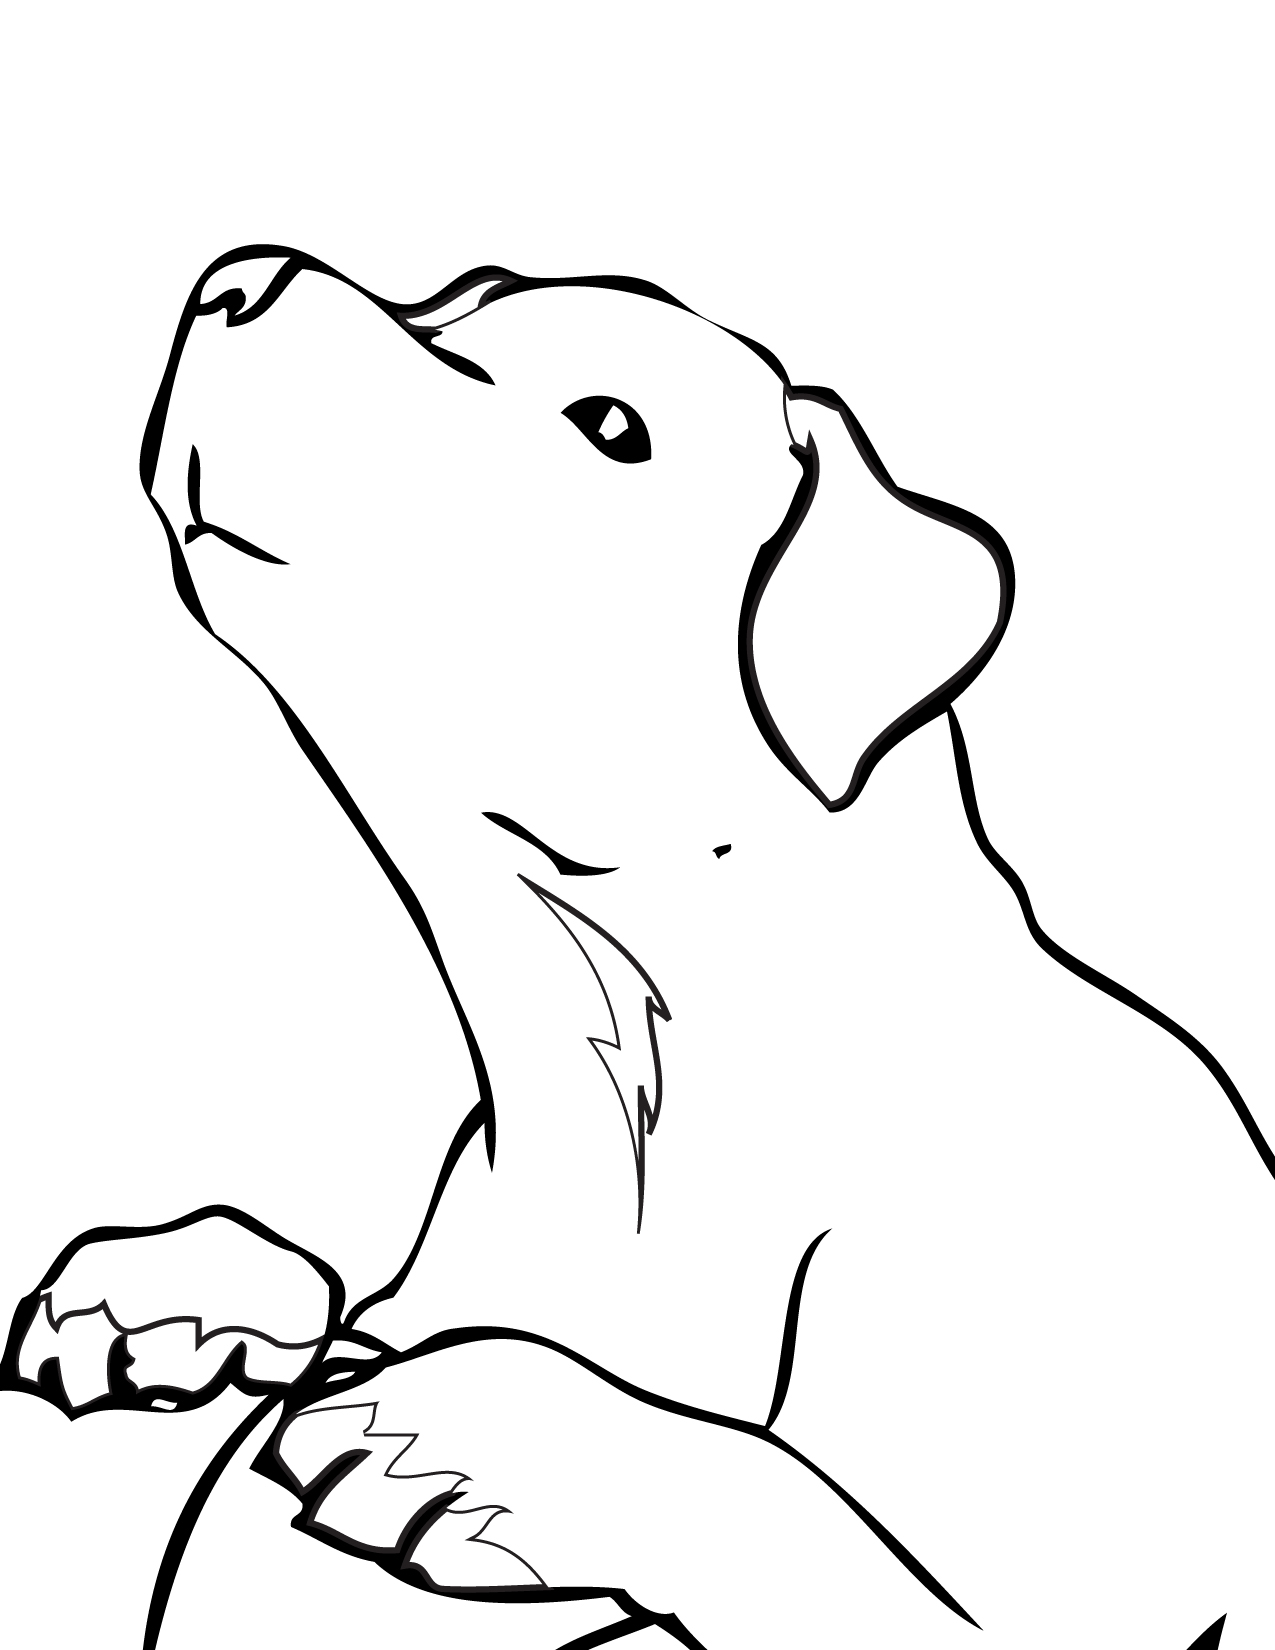 labrador colouring pages cute puppy coloring page print color fun colouring pages labrador